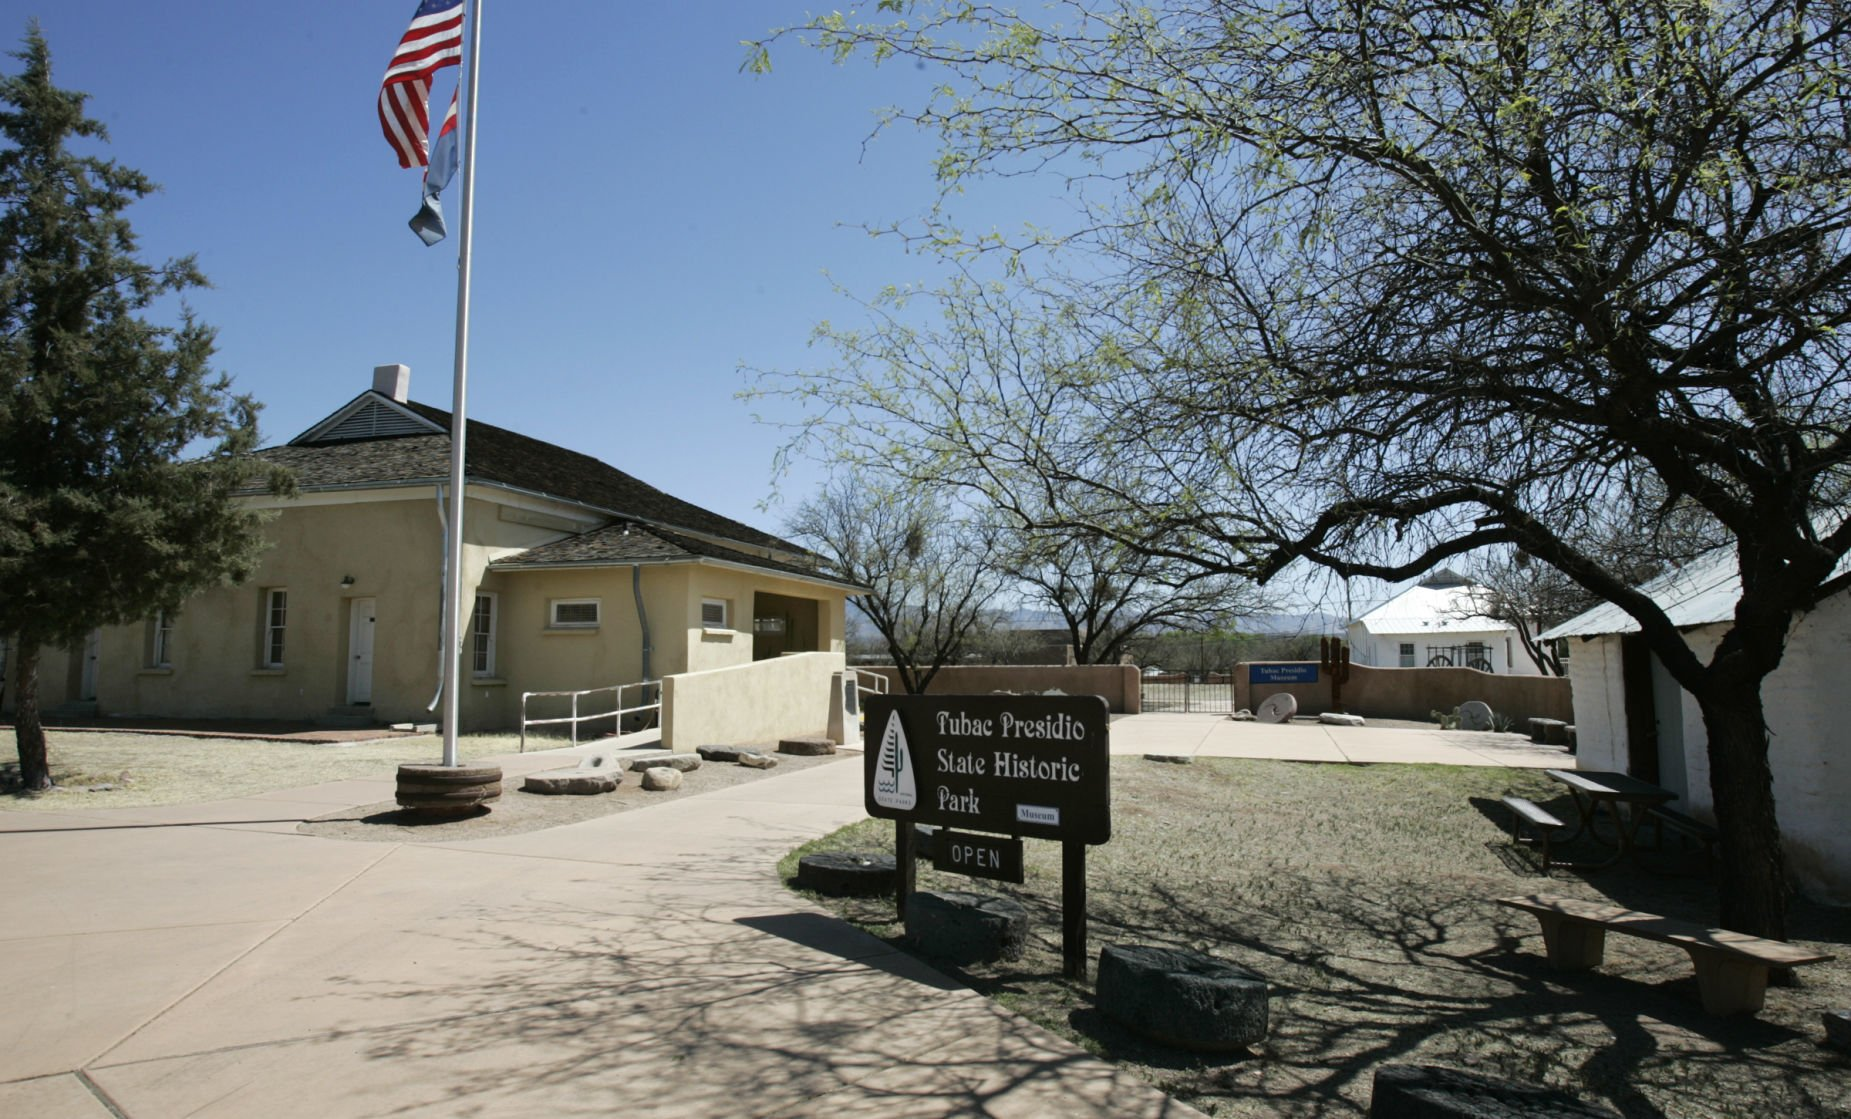 Blame packrats and bureaucracy: Part of Tubac Presidio has been closed for months